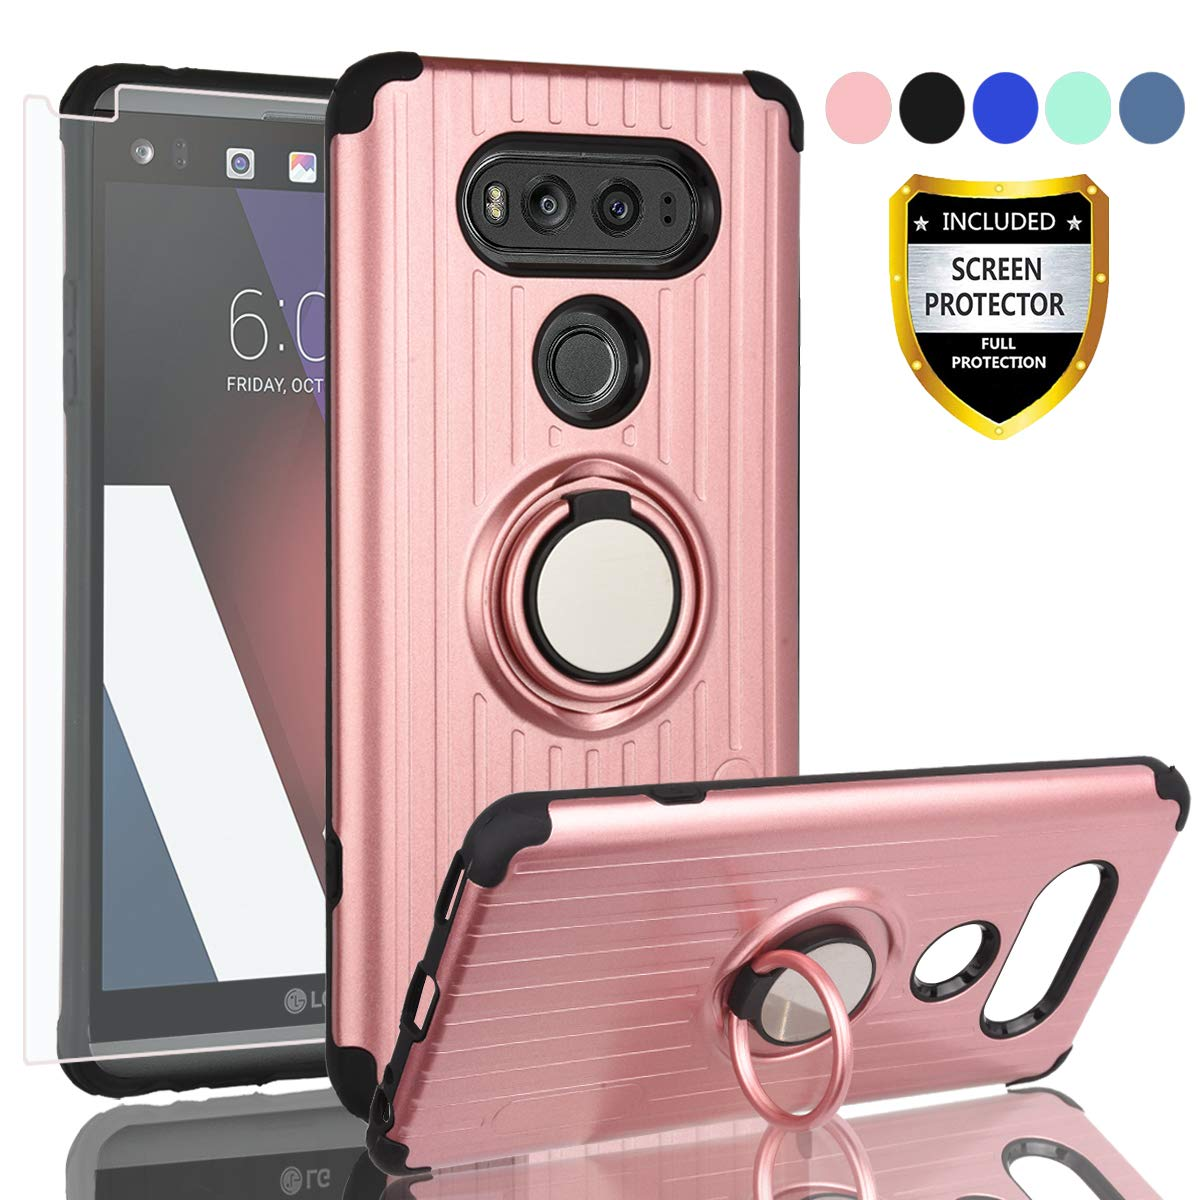 huge discount 9be46 039c5 Amazon.com: AYMECL LG V20 Phone Case,LG V20 Case with HD Screen ...